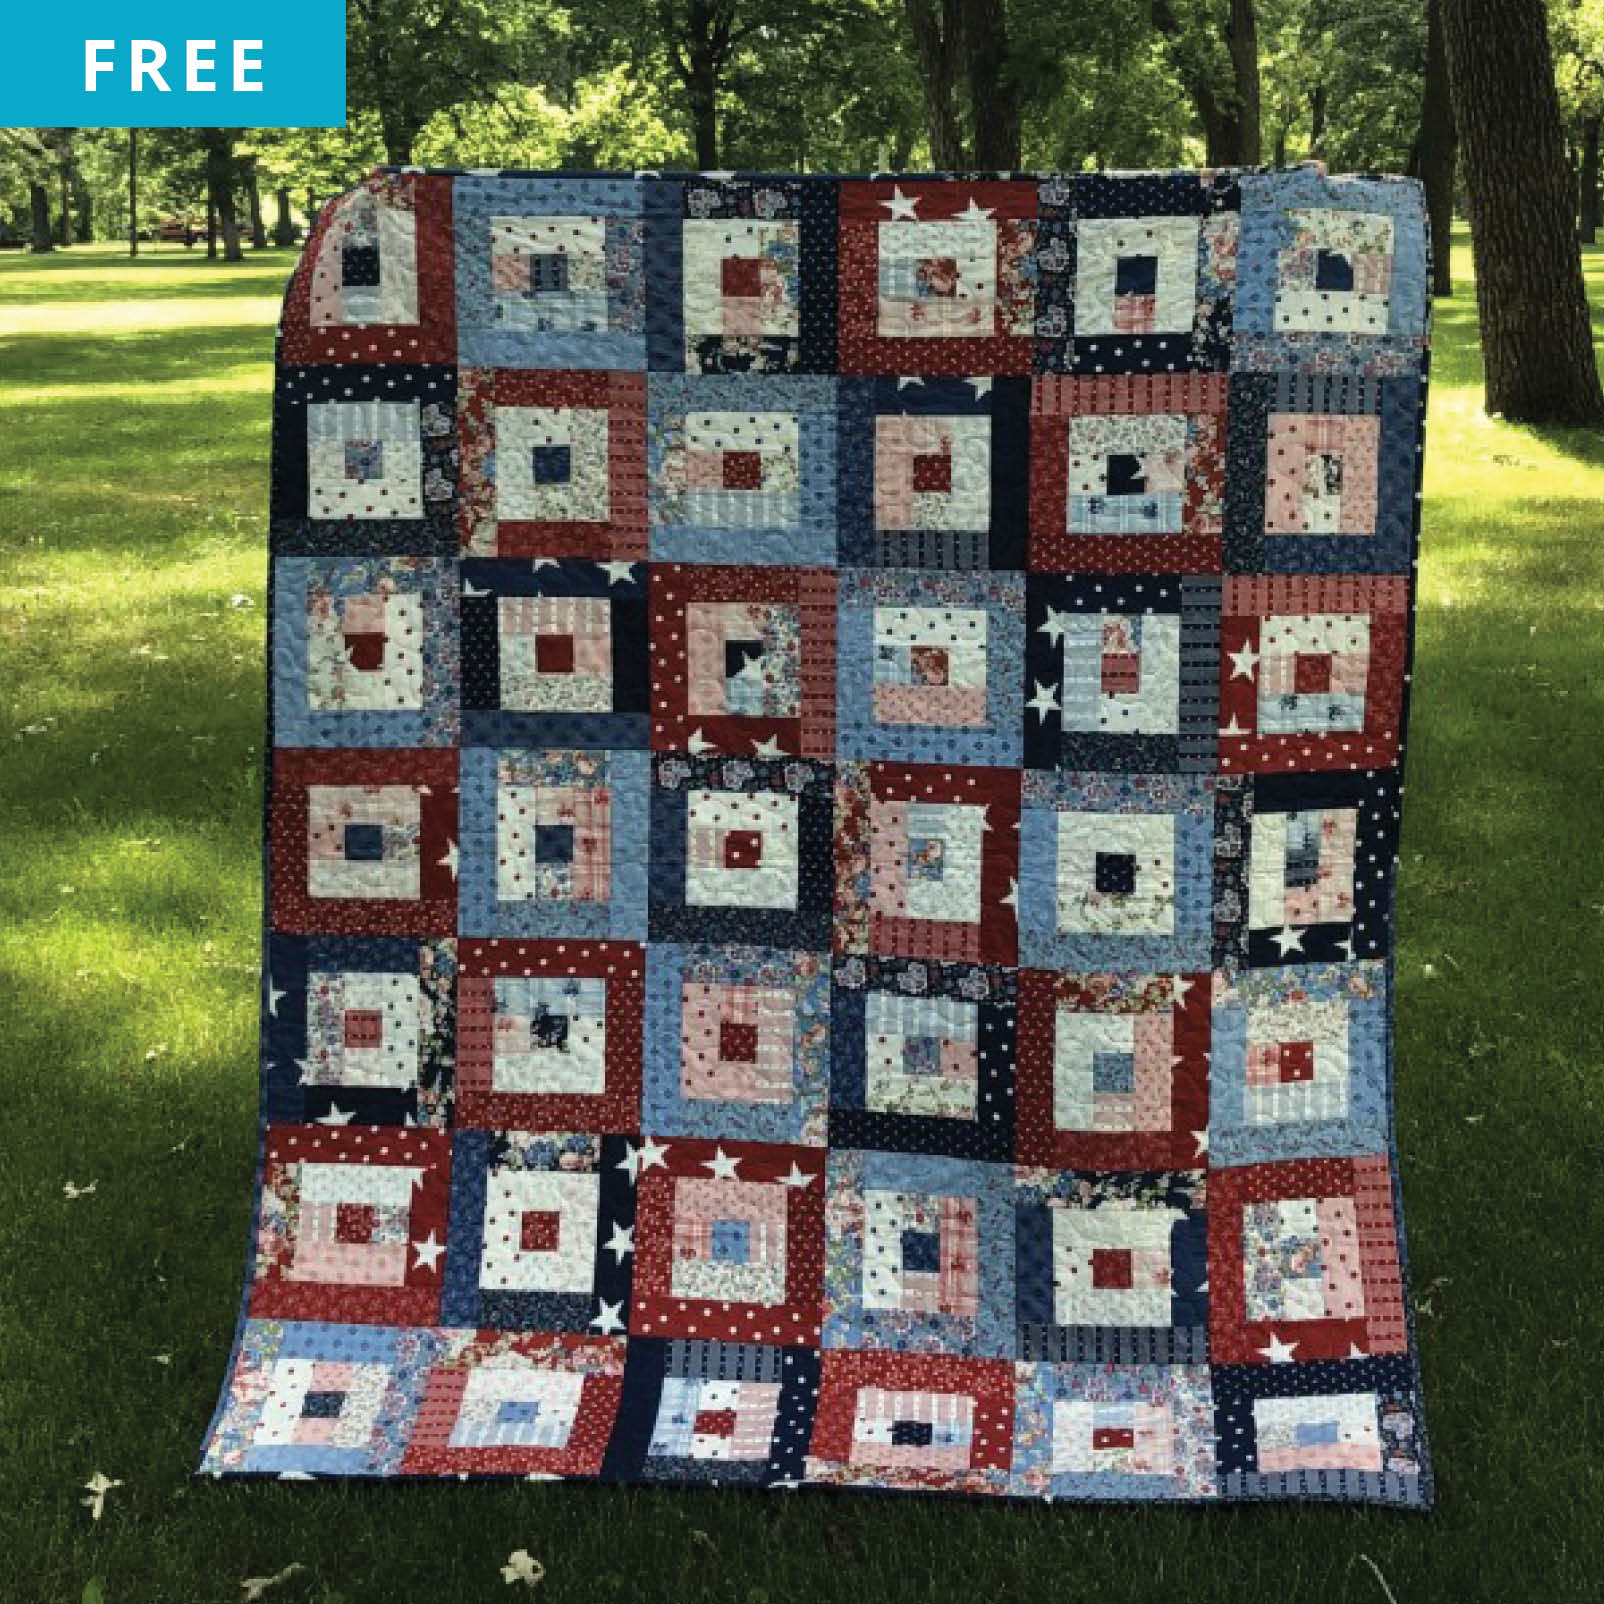 Free Quilt Pattern - Freedom Squares Picnic Quilt